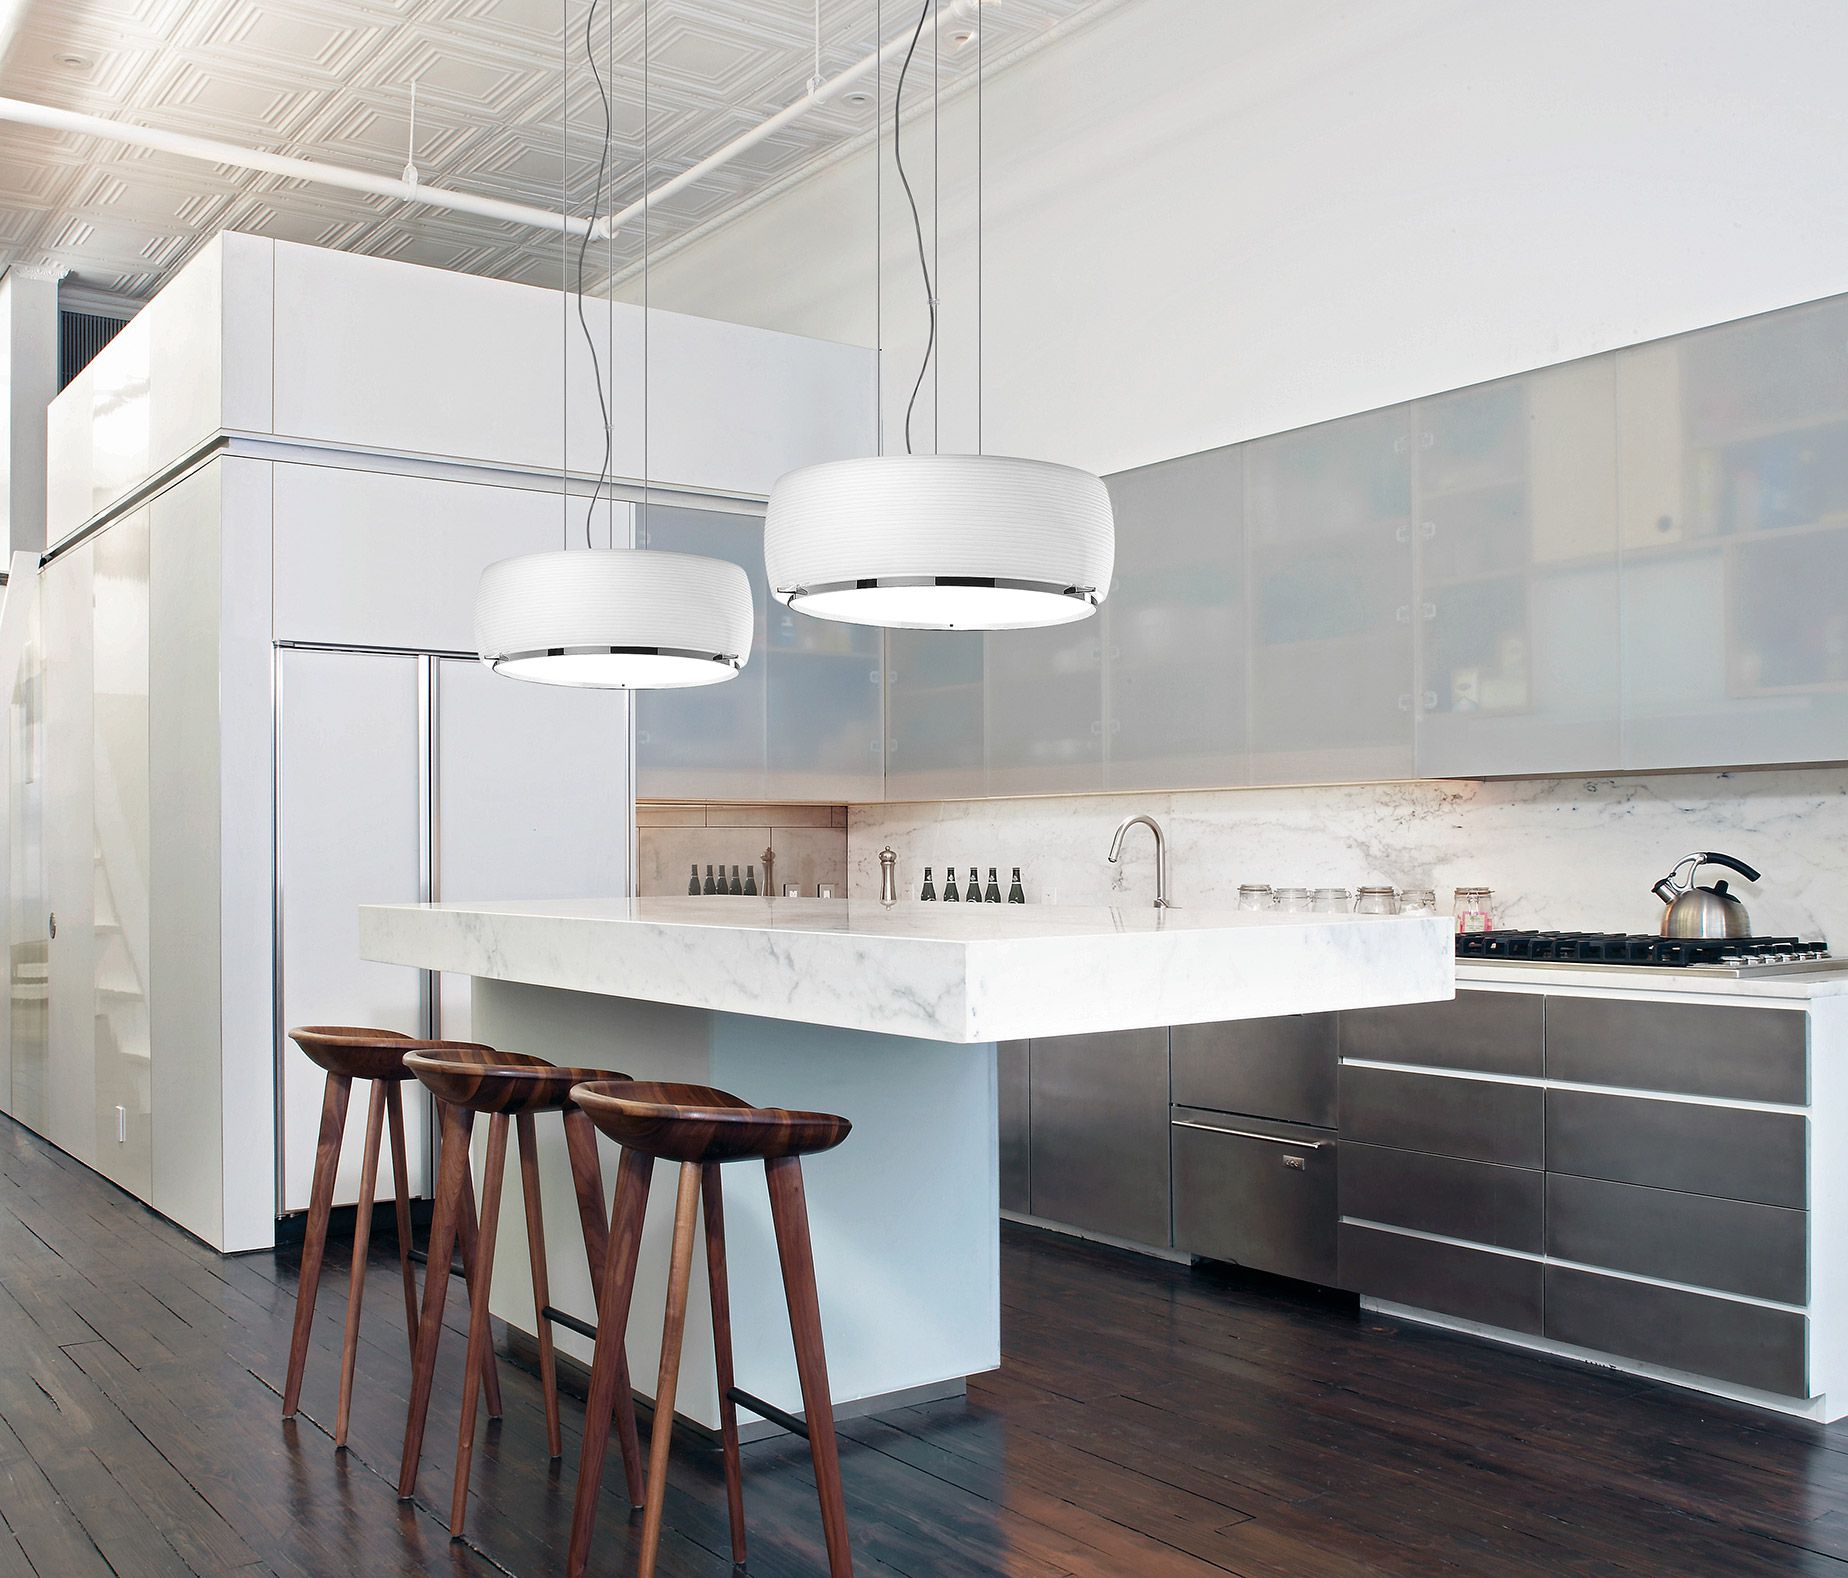 Choosing the perfect chandelier for your kitchen